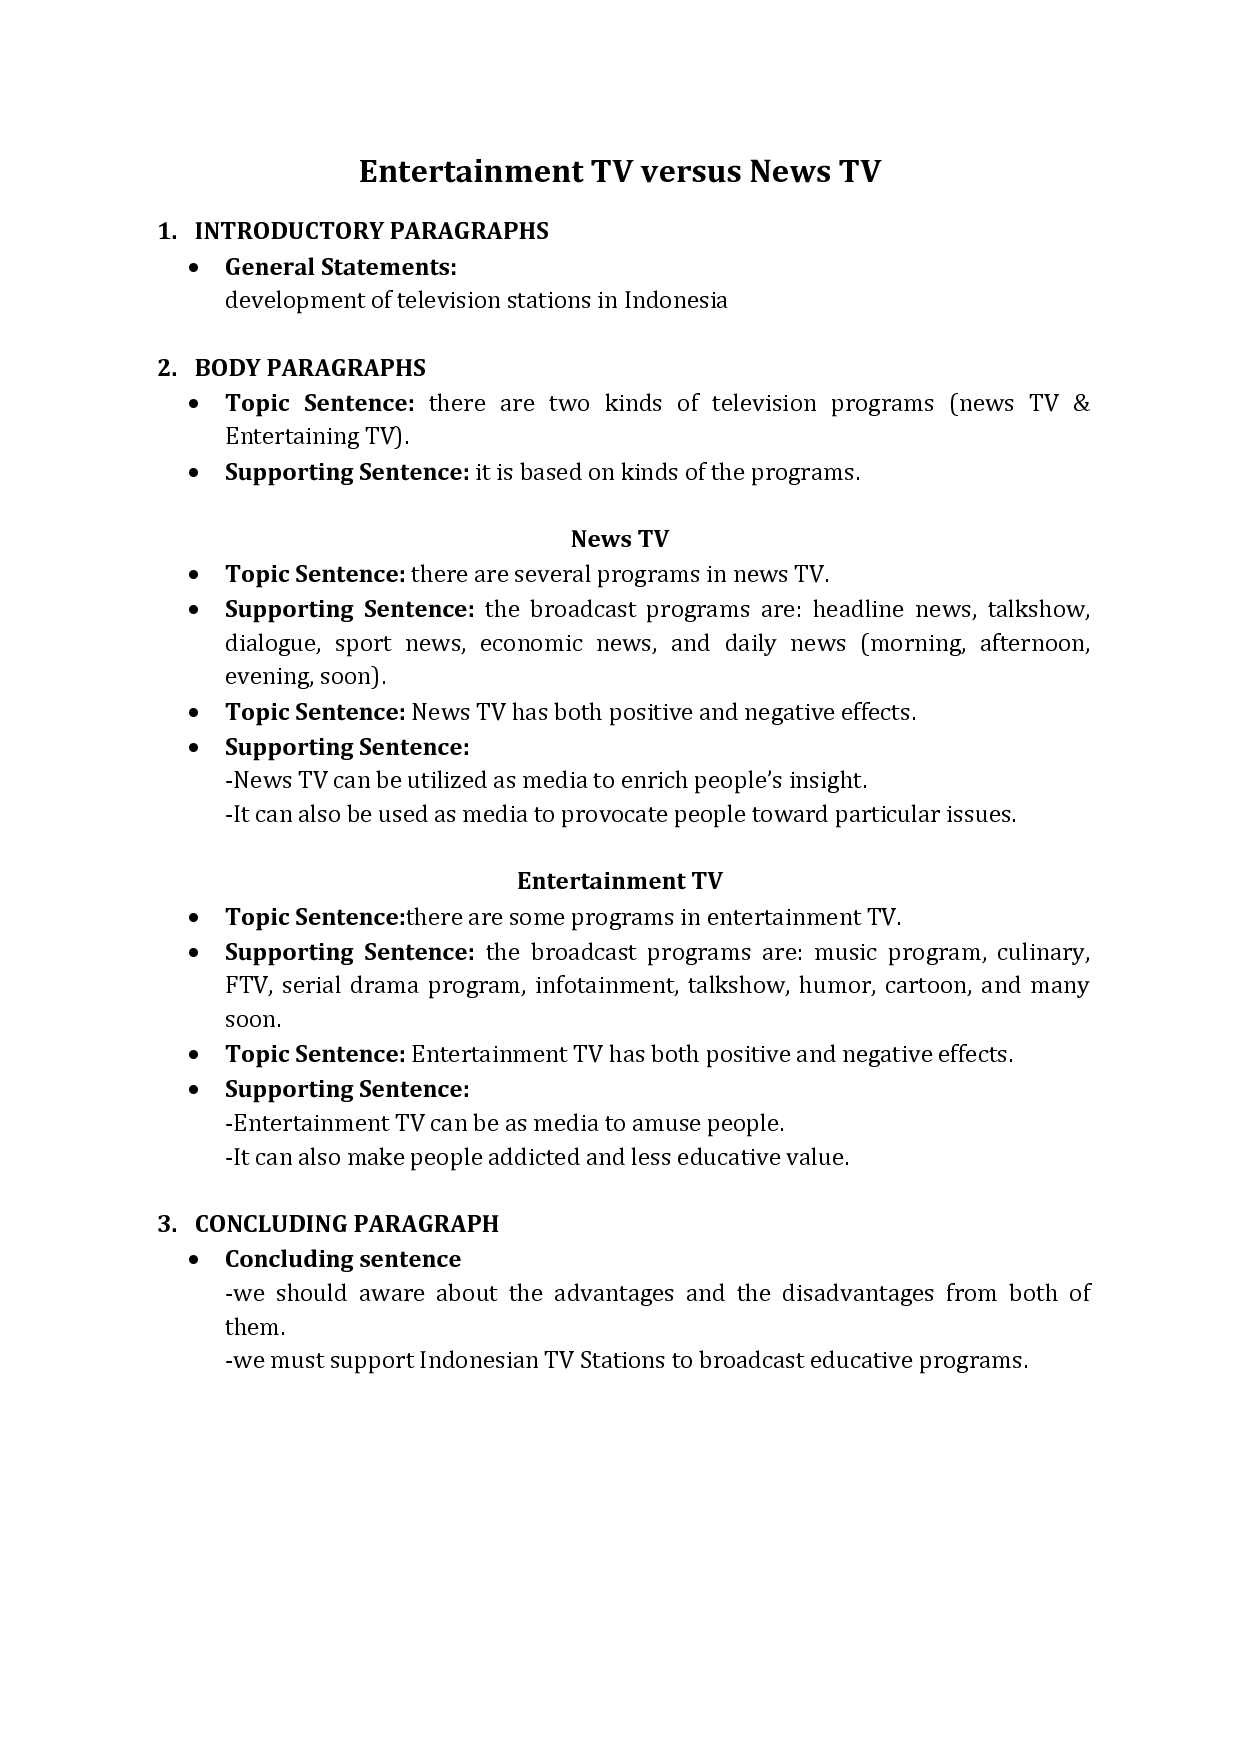 Persuasive Speech Outline Template        Free Sample  Example     Template net Essay writing on national unity